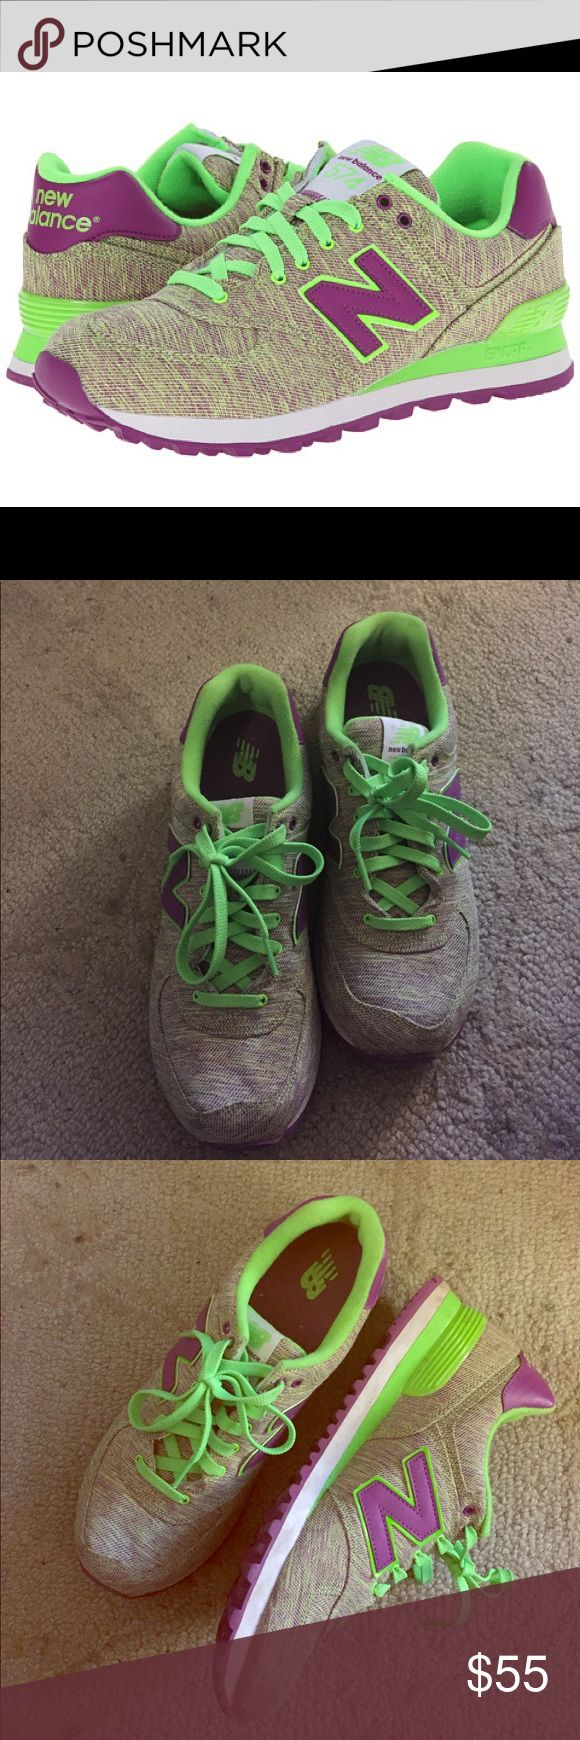 """NEW BALANCE Sneakers in Glitch (green and purple) Super comfy new balance sneakers in size 10 women's. In """"Glitch"""", (green and purple) and in preloved condition. Insides are clean. Some dirt on the soles. A great buy! New Balance Shoes Sneakers"""